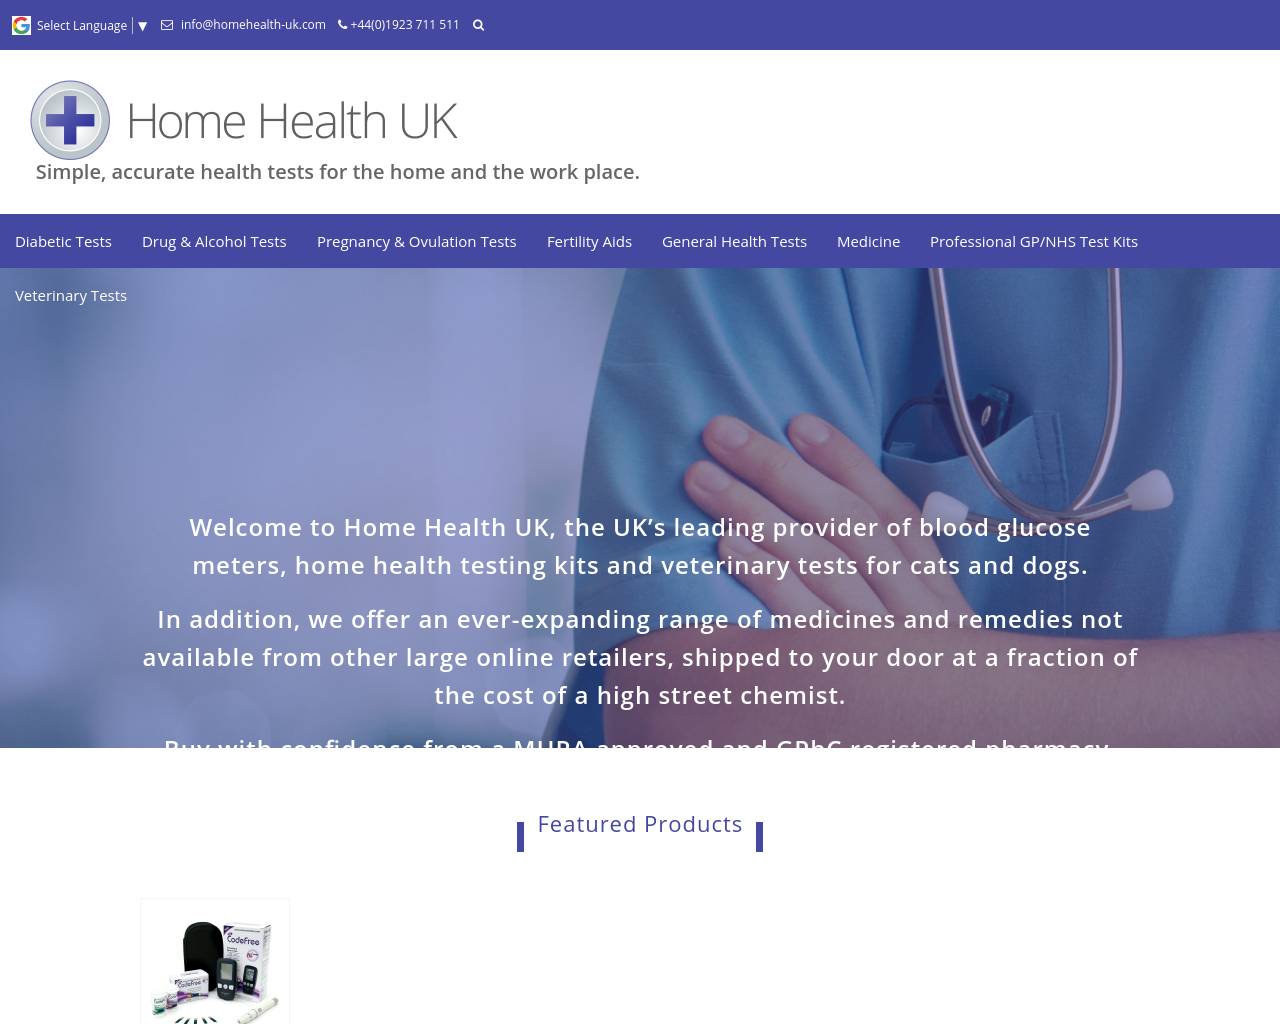 Home-Health-UK-Advertising-Reviews-Pricing